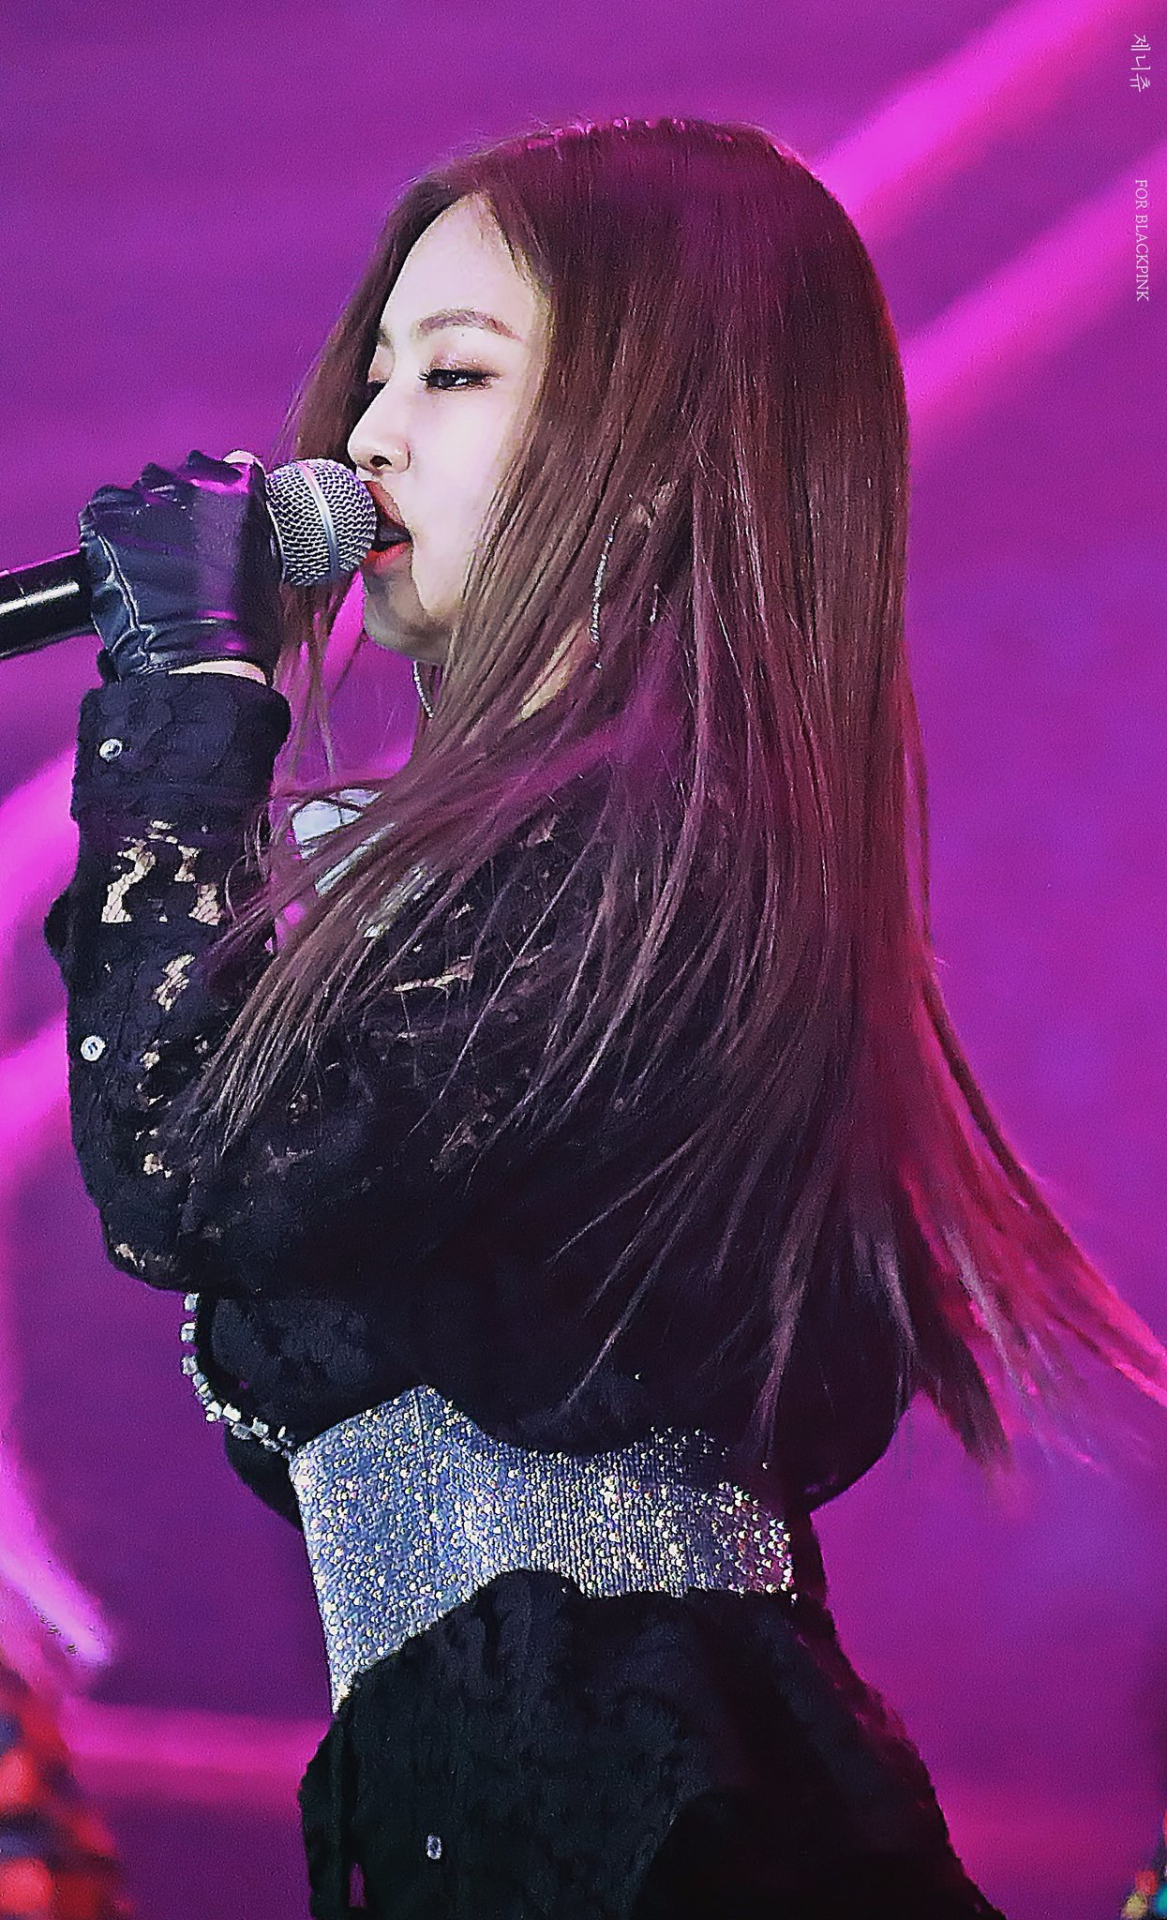 Download Black Wallpaper For Android Jennie Kim Android Iphone Wallpaper Asiachan Kpop Jpop